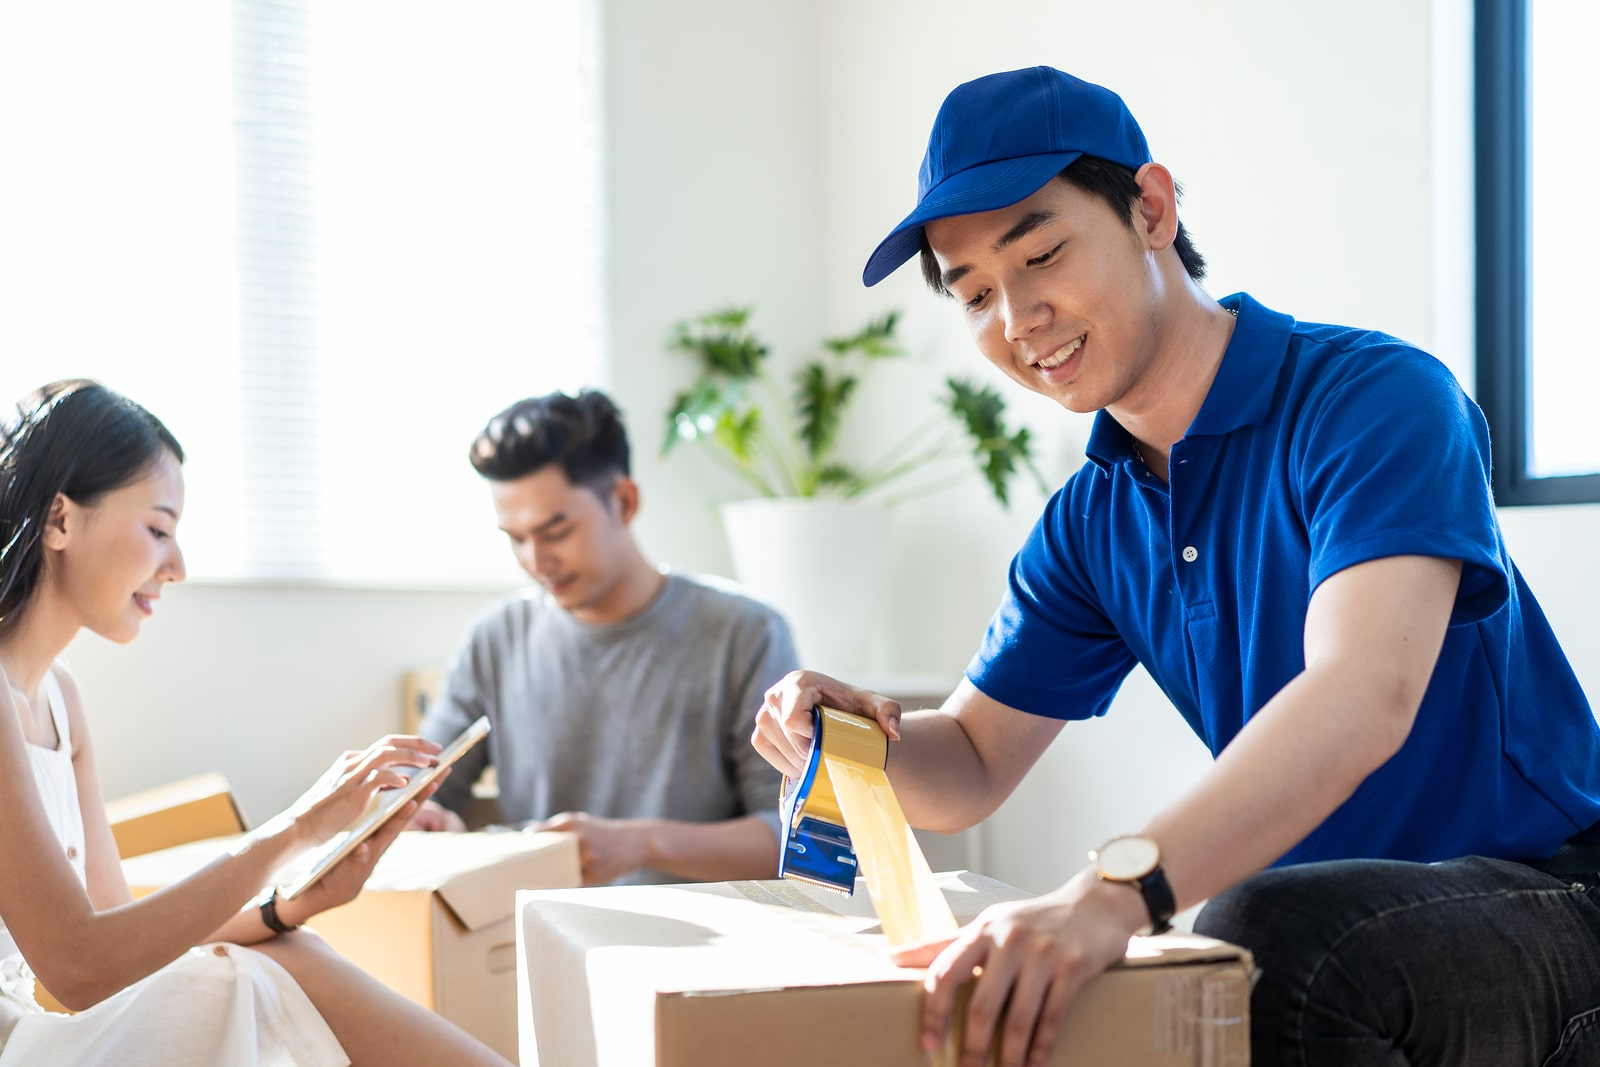 bigstock-House-Moving-And-Packing-Servi-343631272-min